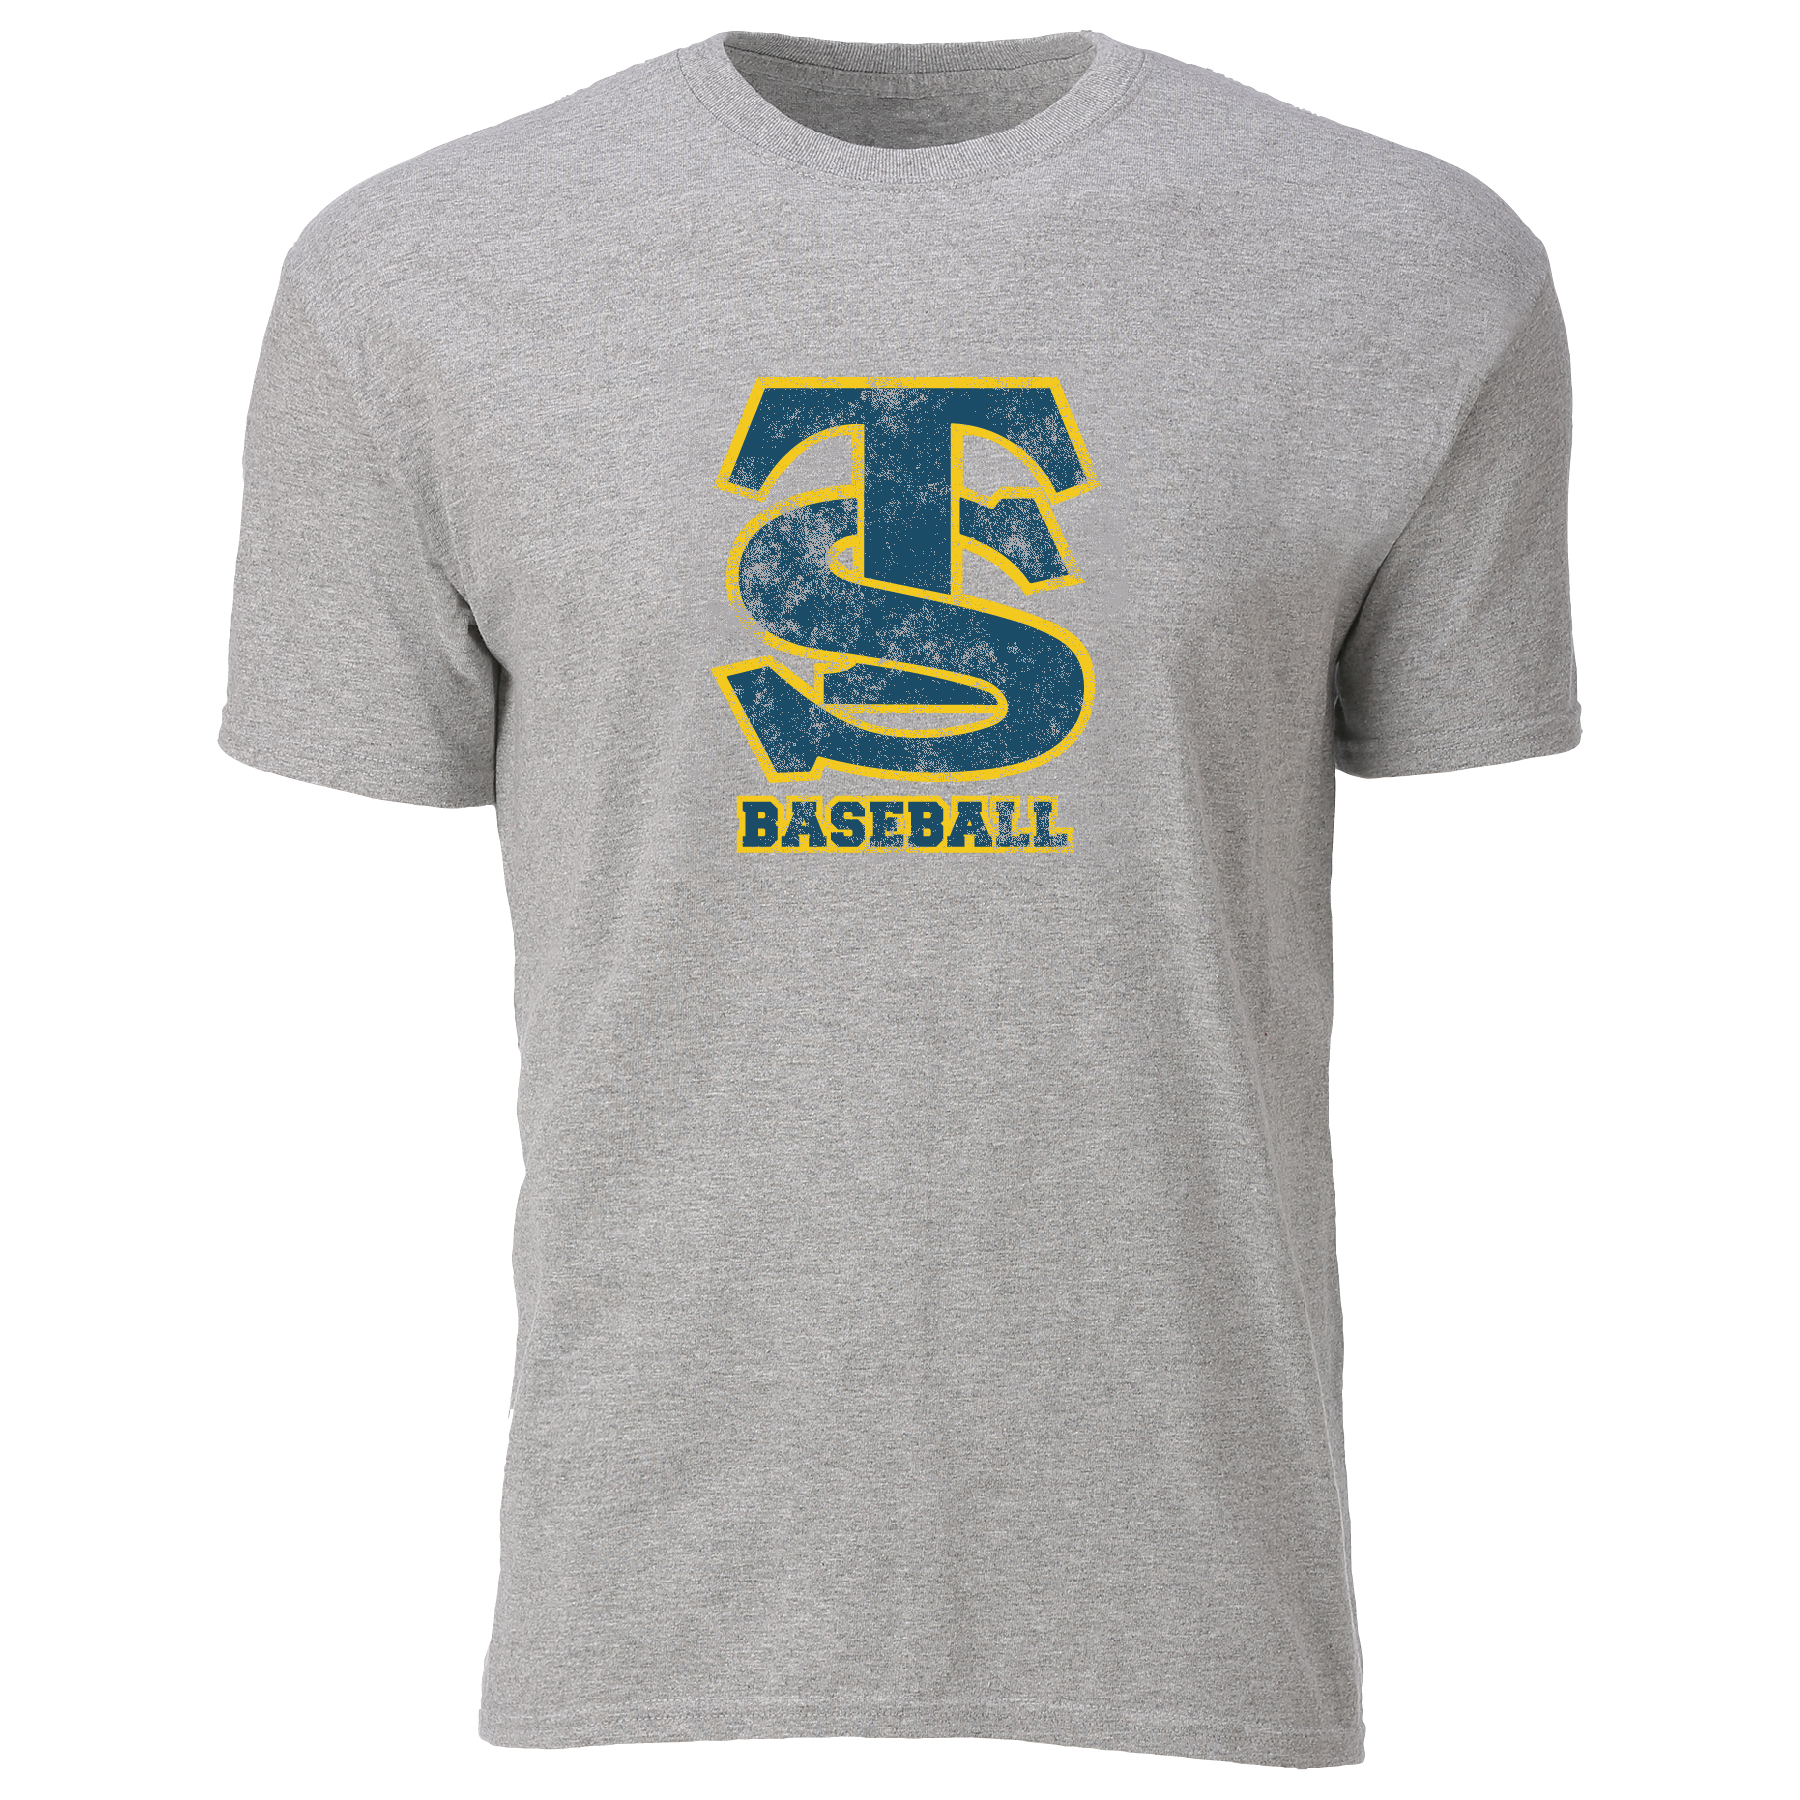 TS Baseball t-shirt